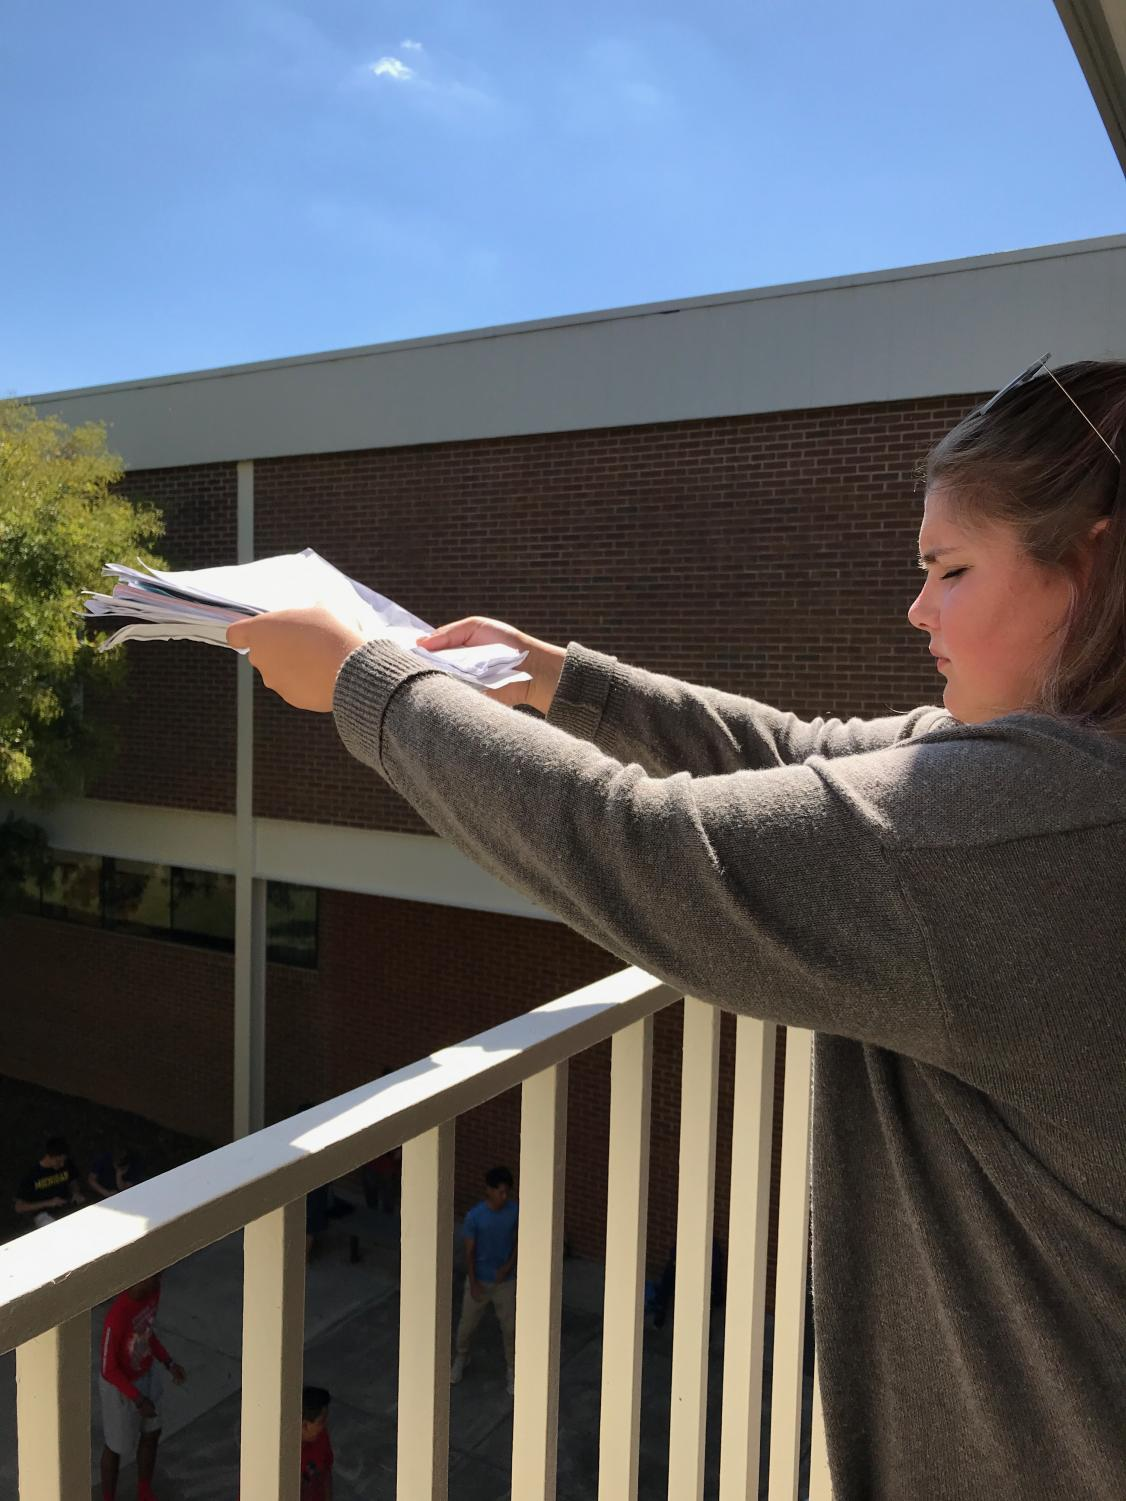 Gabby Safley (12) prepares to throw a stack of cornell notes off the balcony.